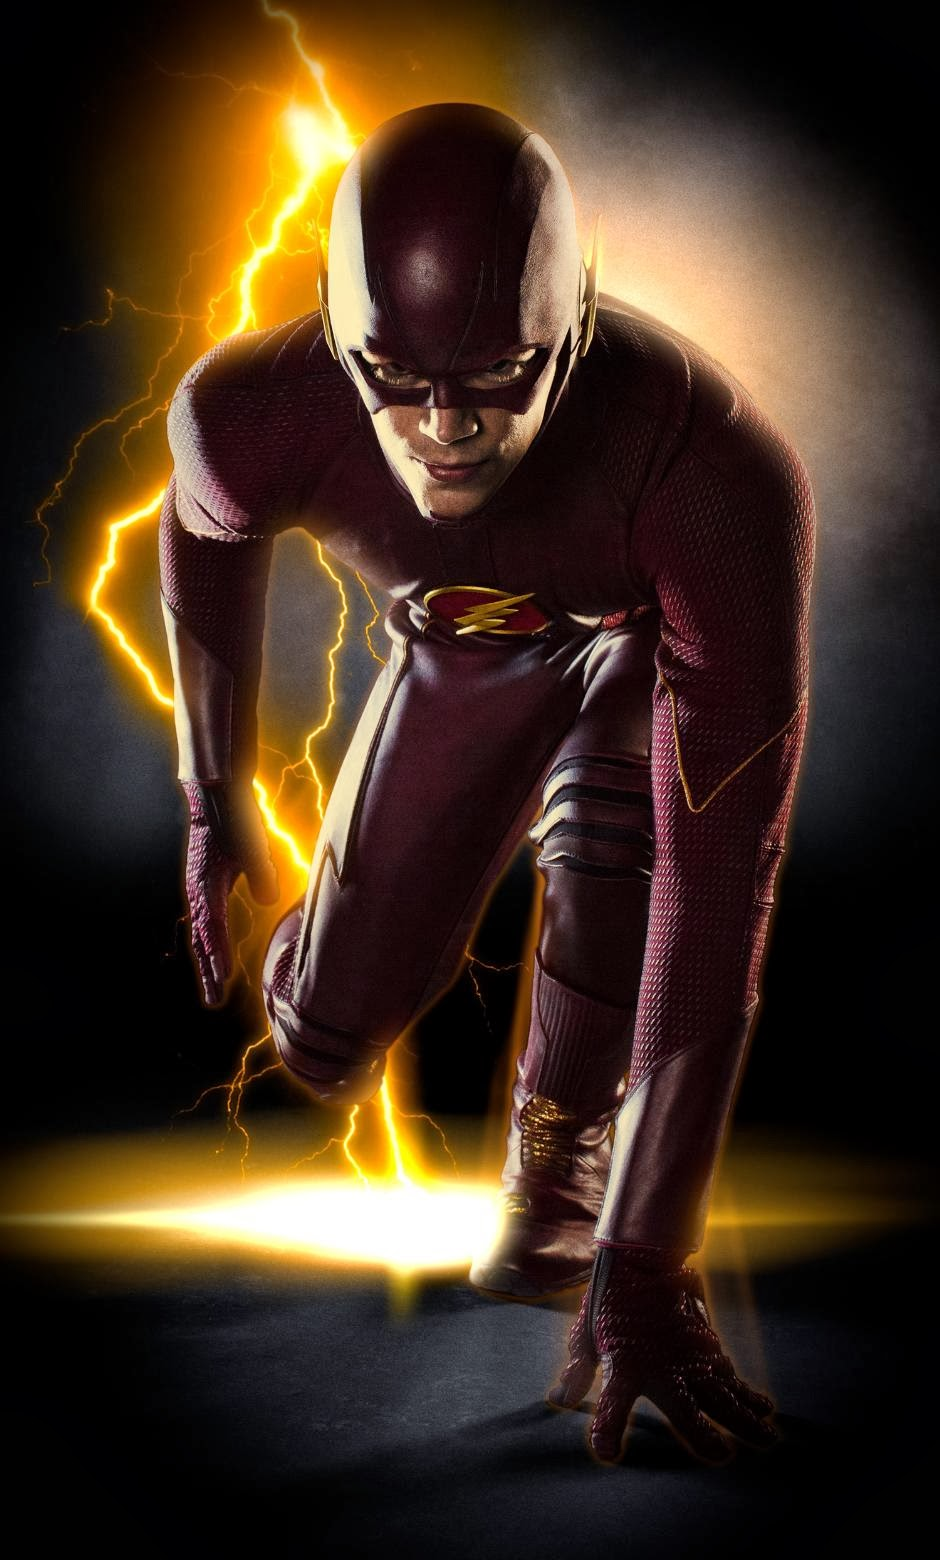 Primera imagend e Grant Gustin con el traje de The Flash